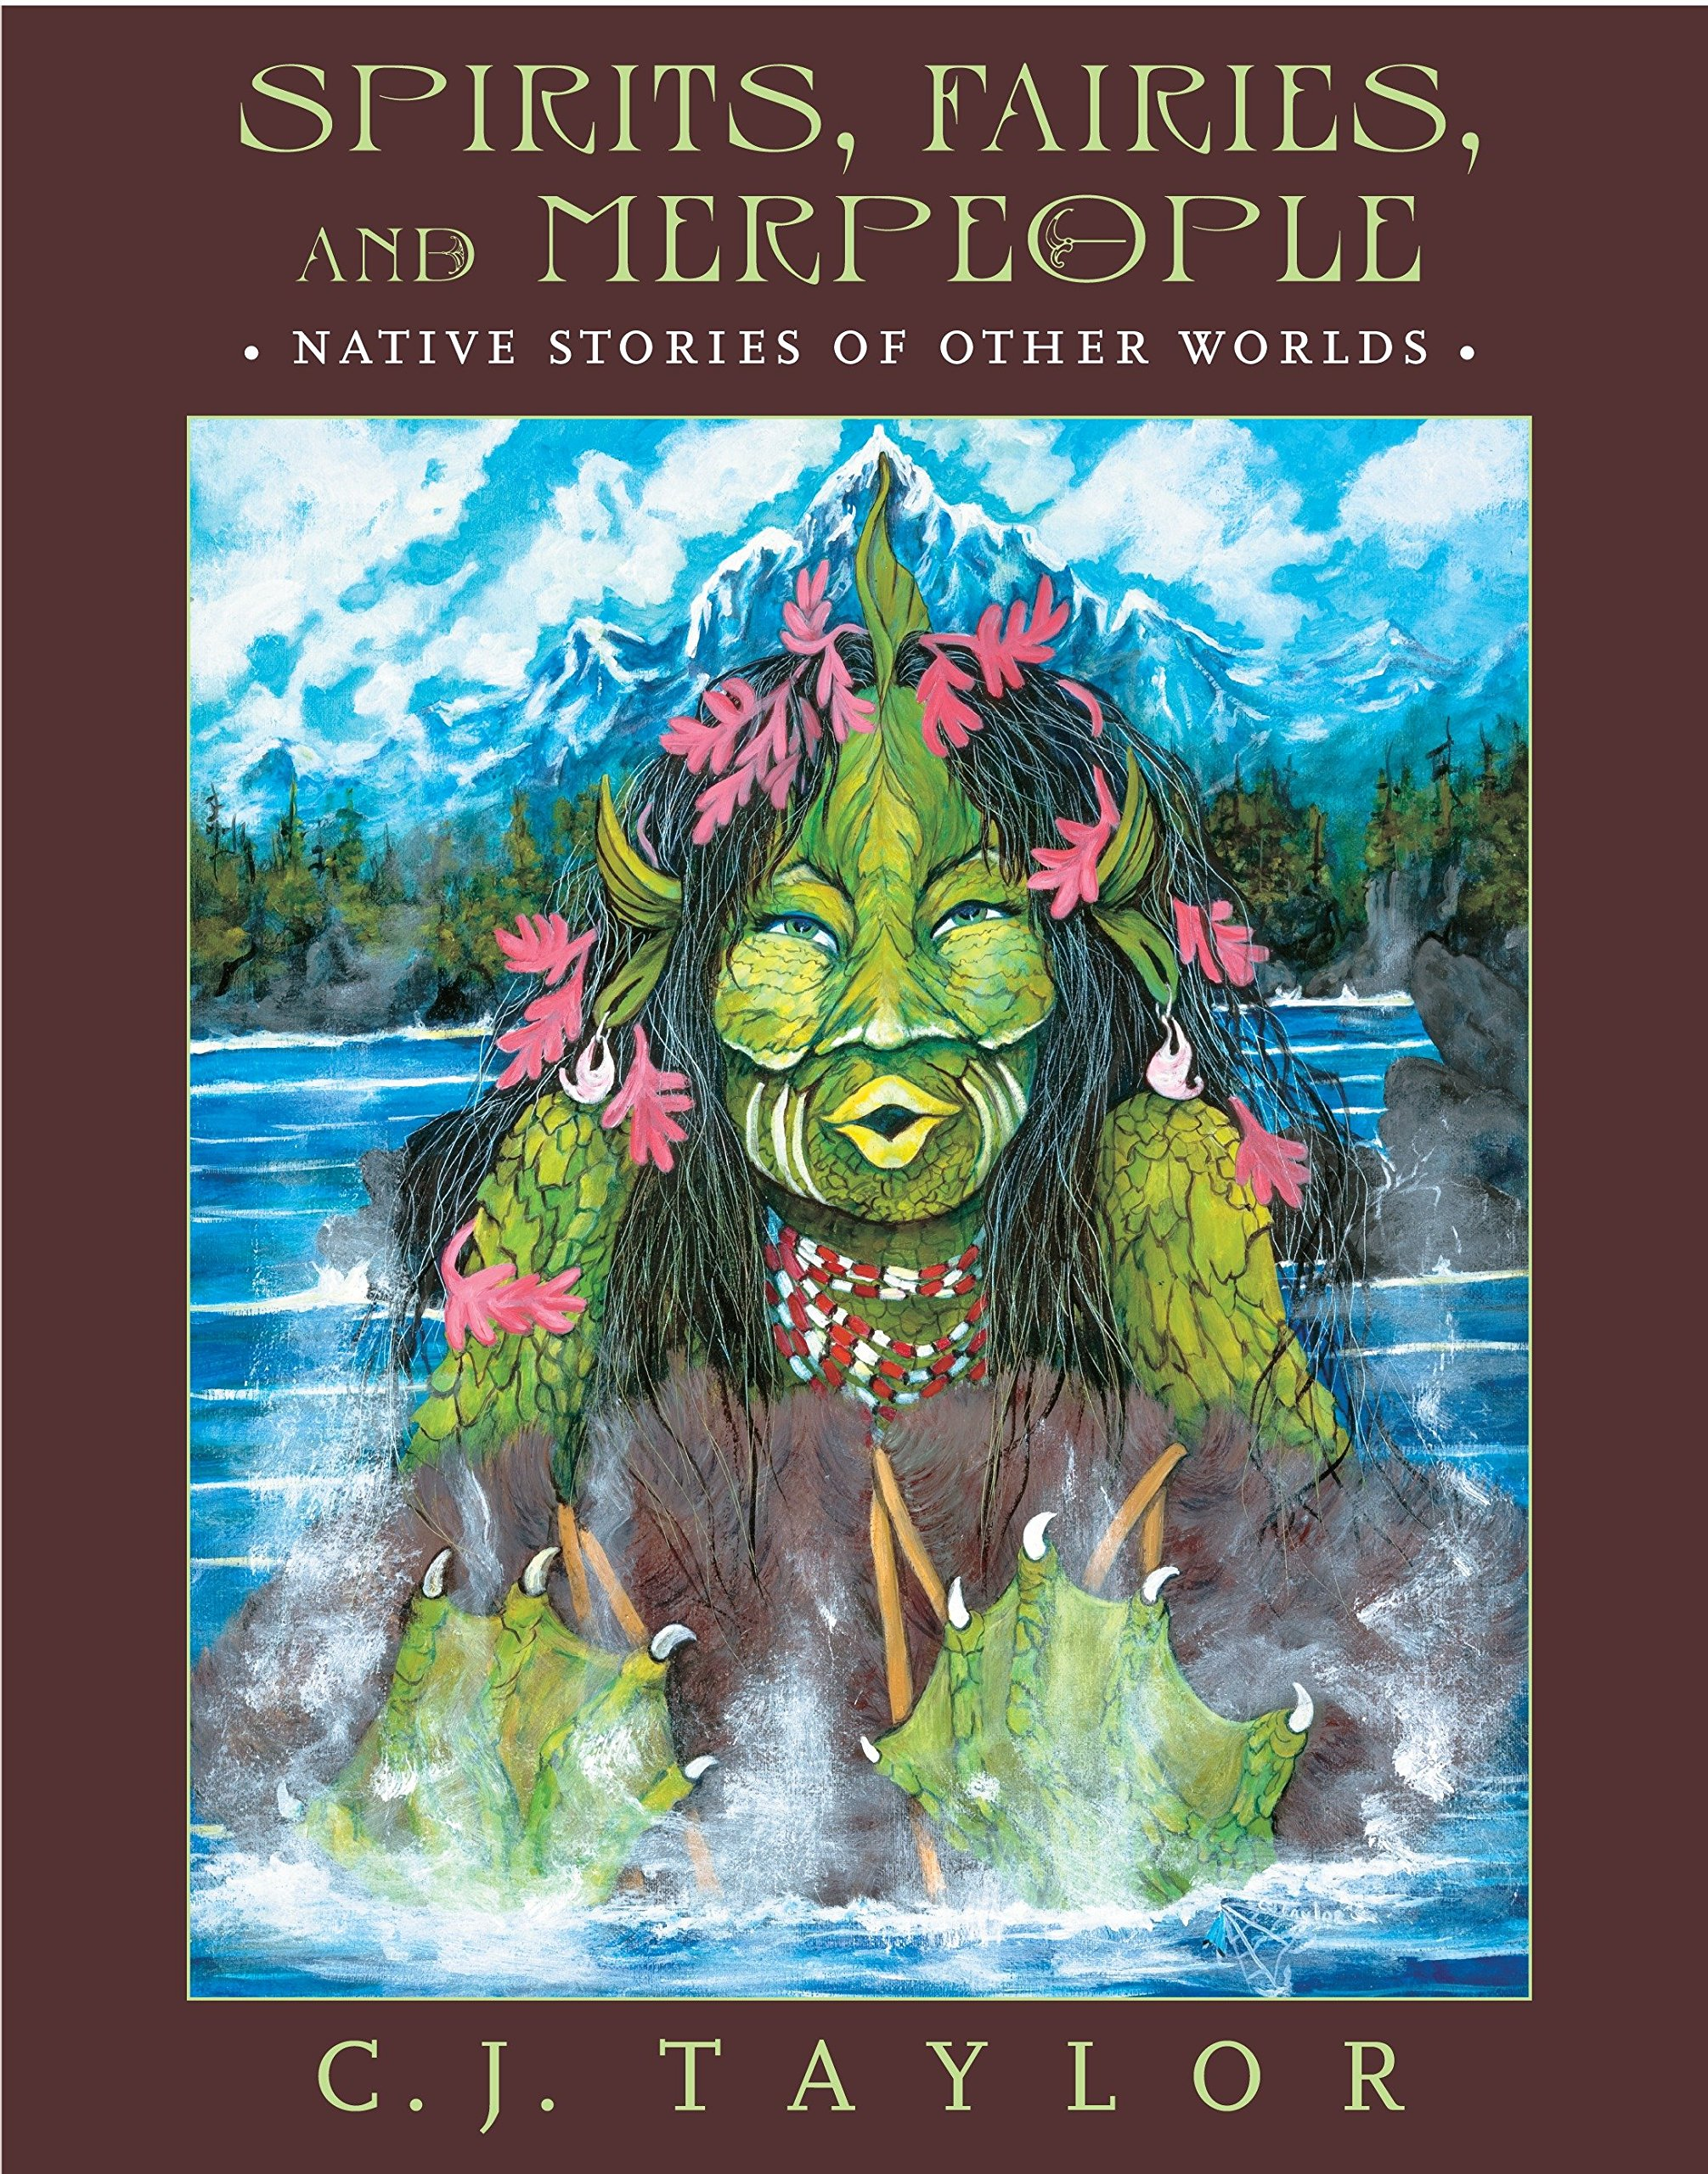 Spirits, Fairies, and Merpeople: Native Stories of Other Worlds pdf